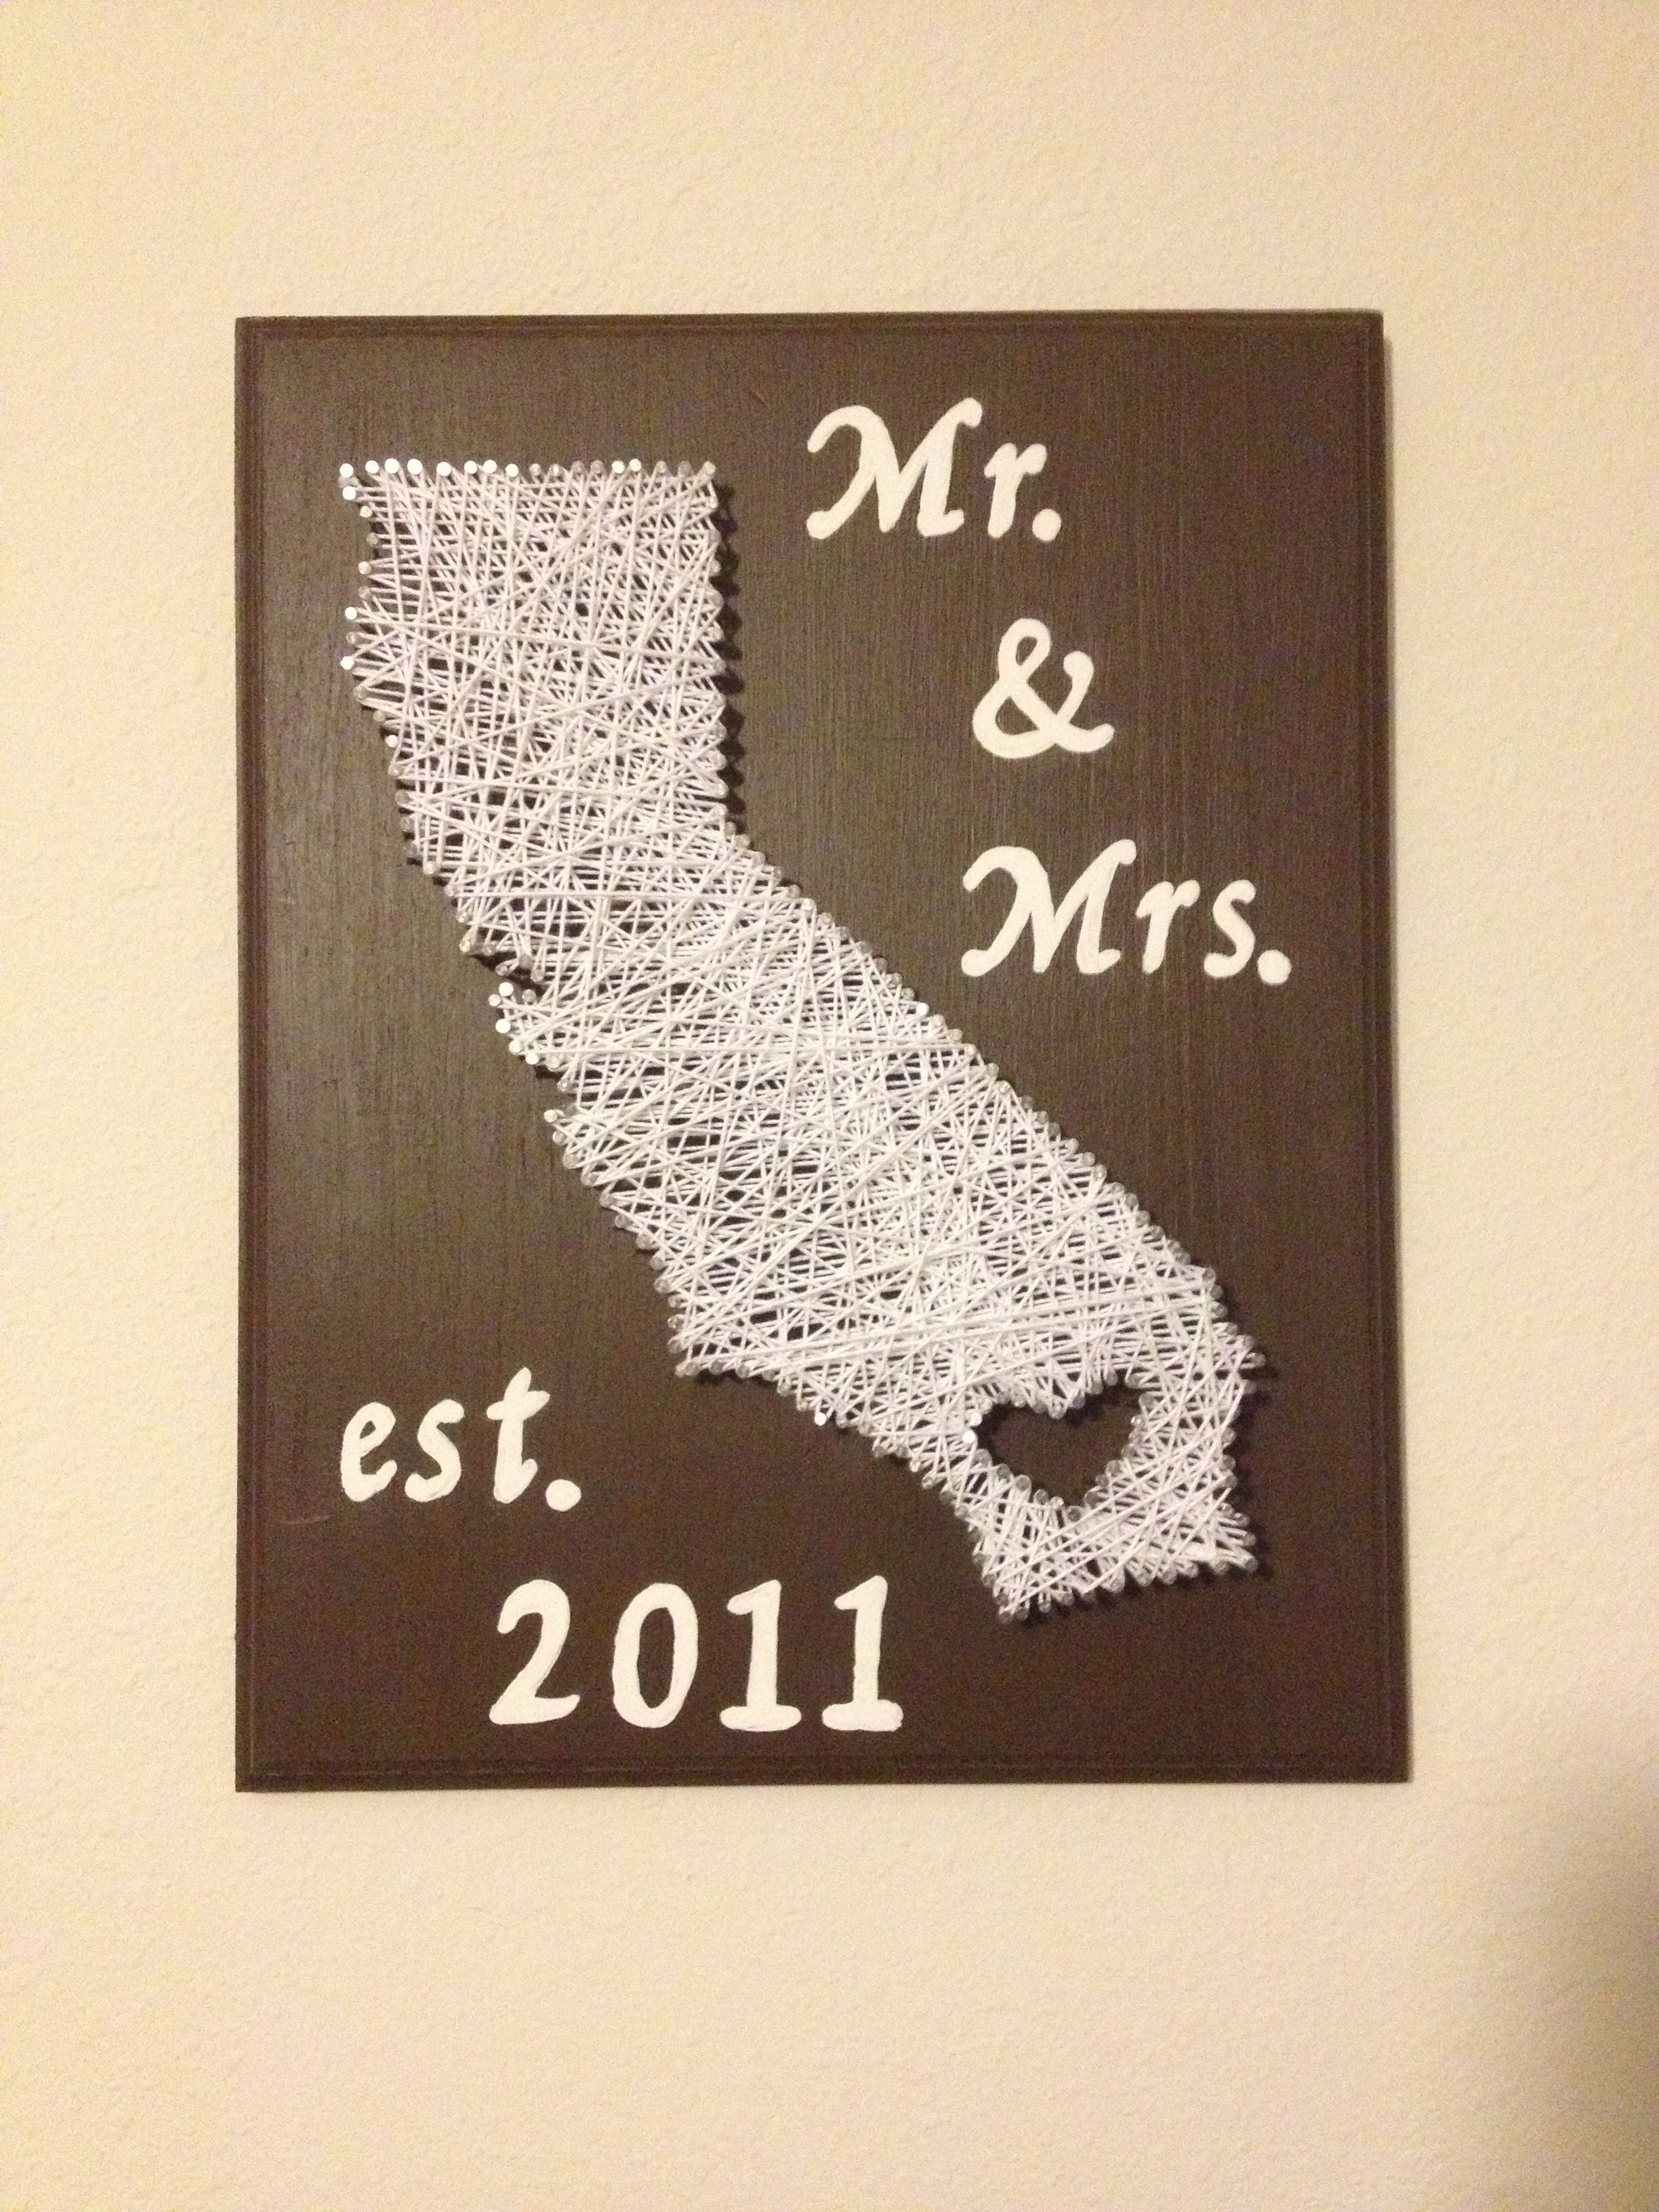 2nd Wedding Anniversary Diy Gifts : DIY 2year wedding anniversary gift. cotton string art. bought wood ...